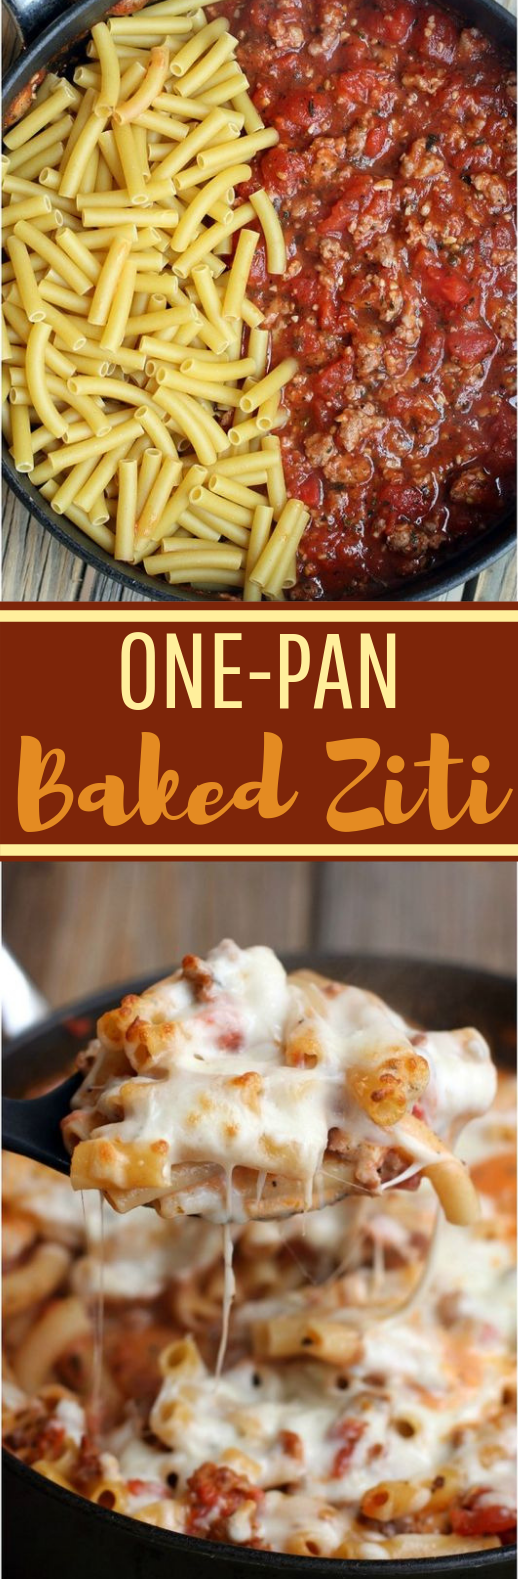 One Pan Baked Ziti #easyrecipe #dinner